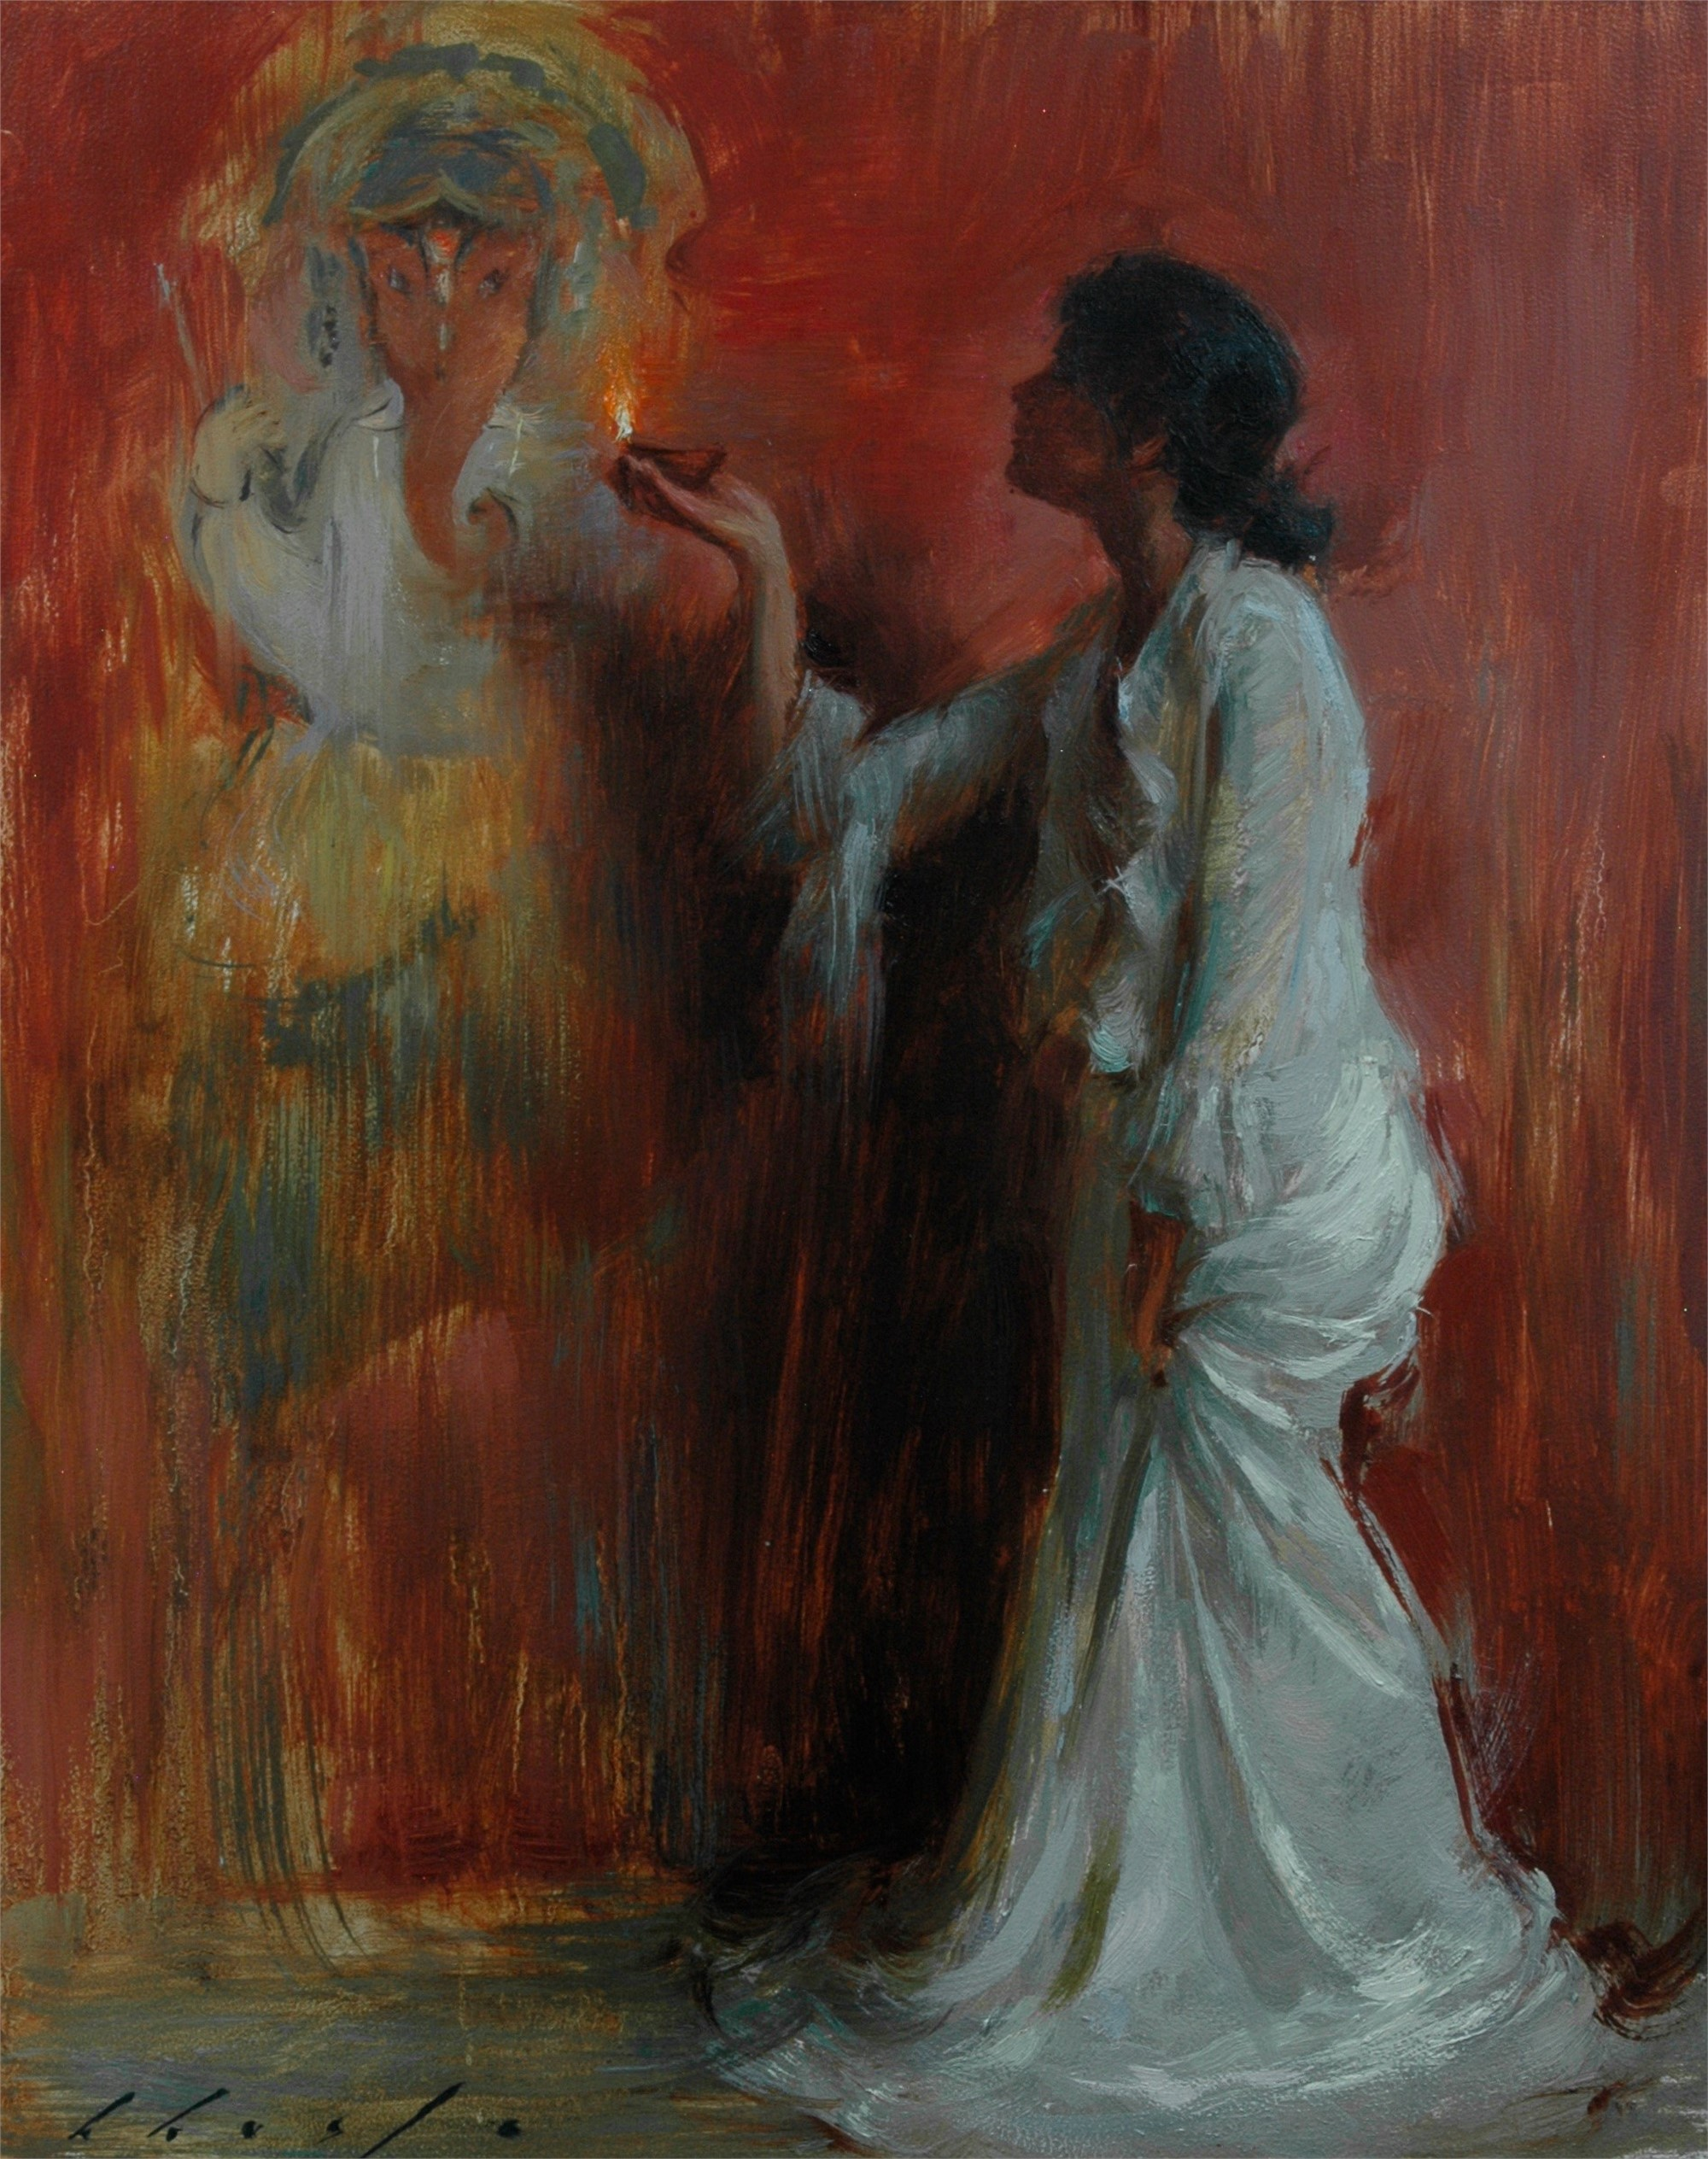 Offering by Suchitra Bhosle